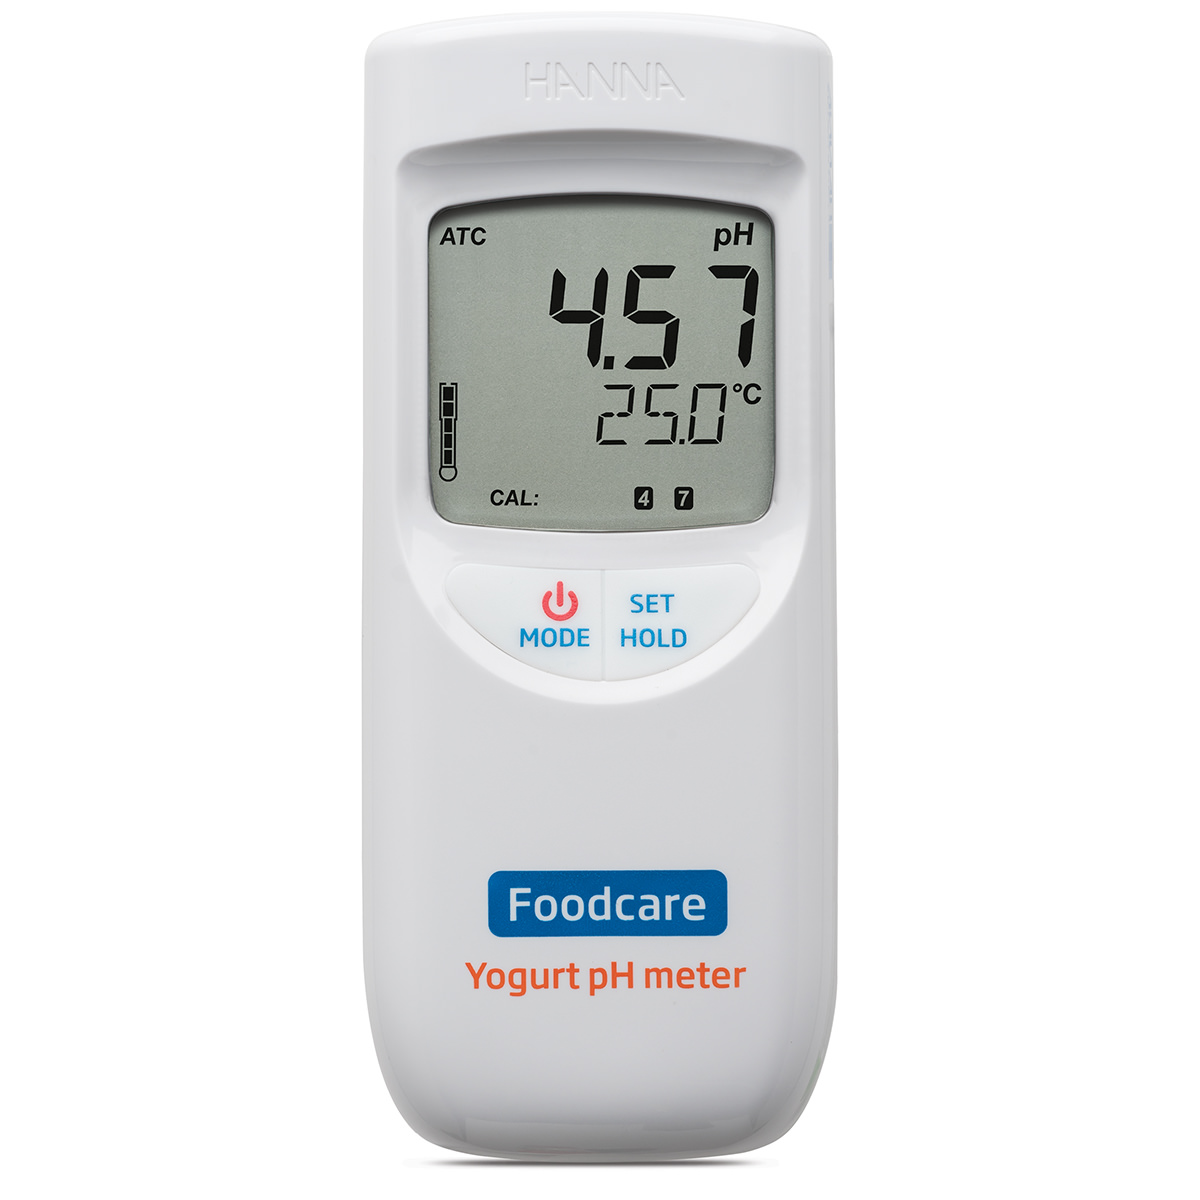 Portable Yogurt pH Meter - HI99164